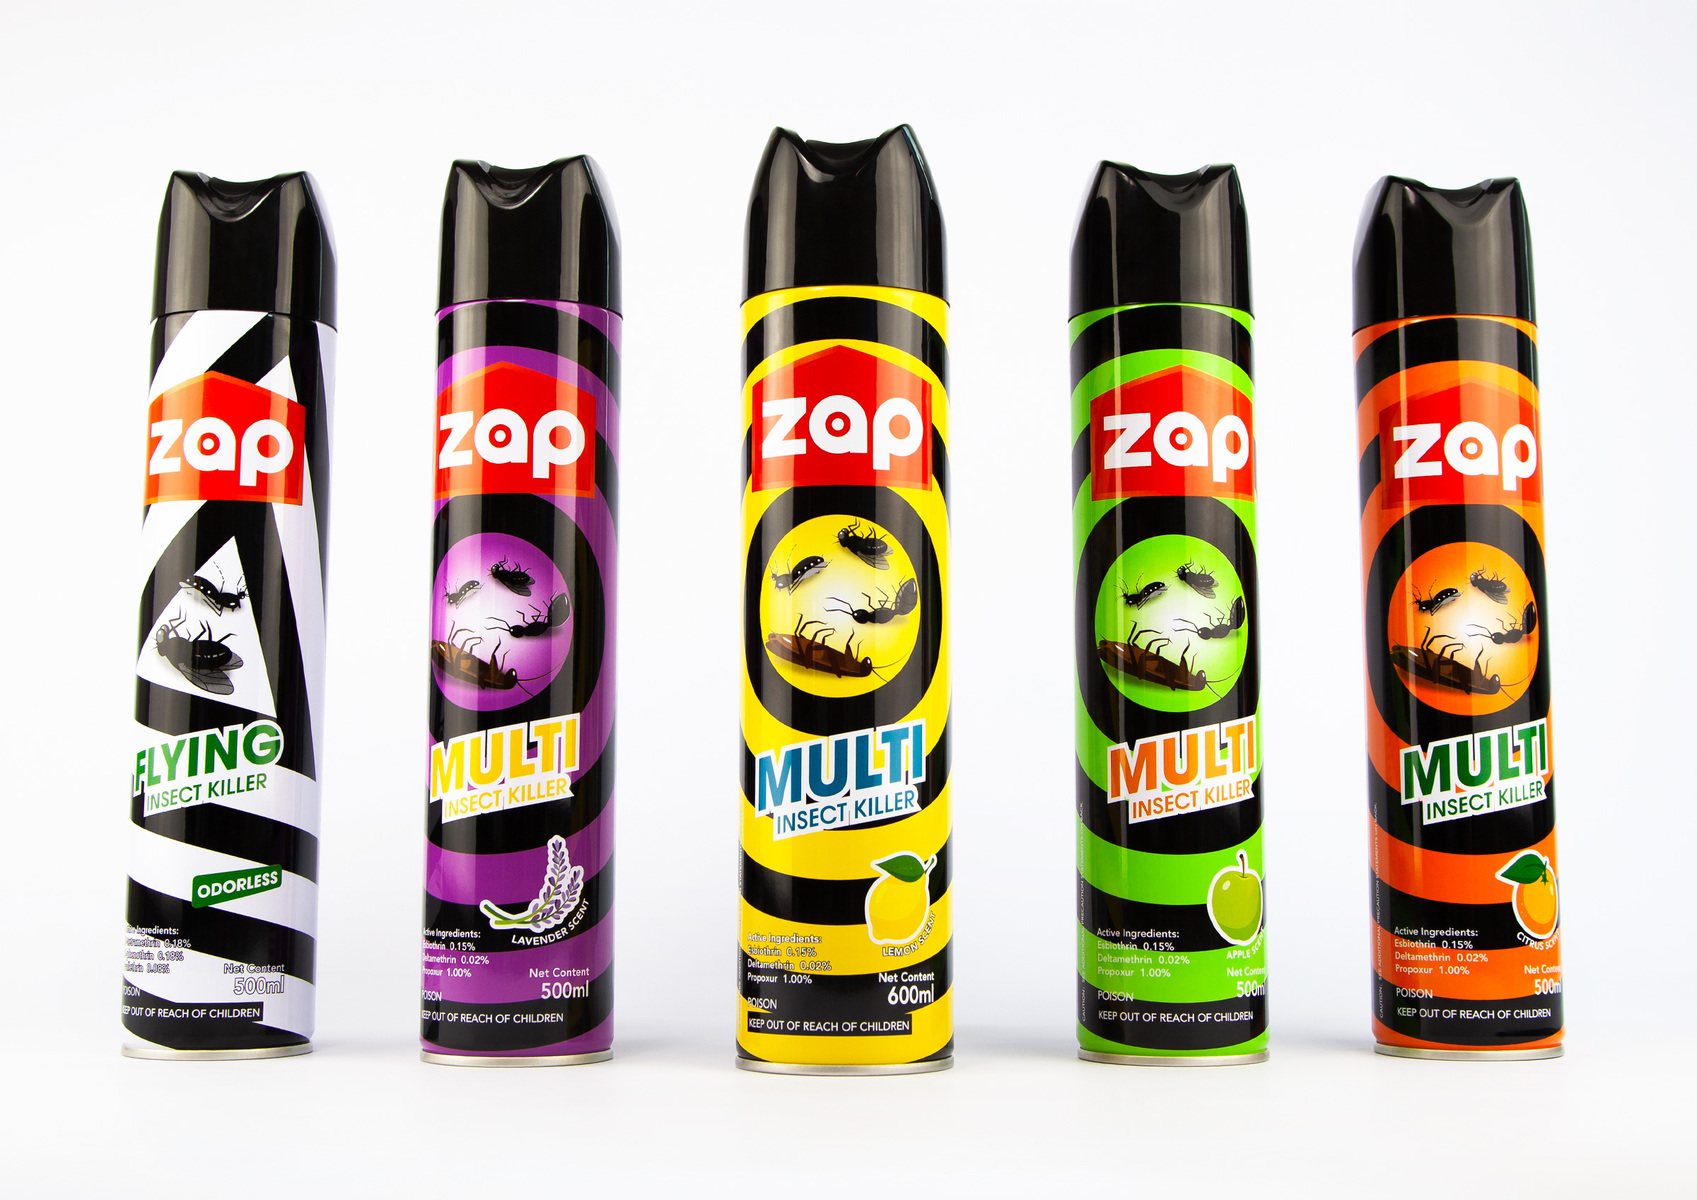 ZAP Brand Logo and Product Packaging Design